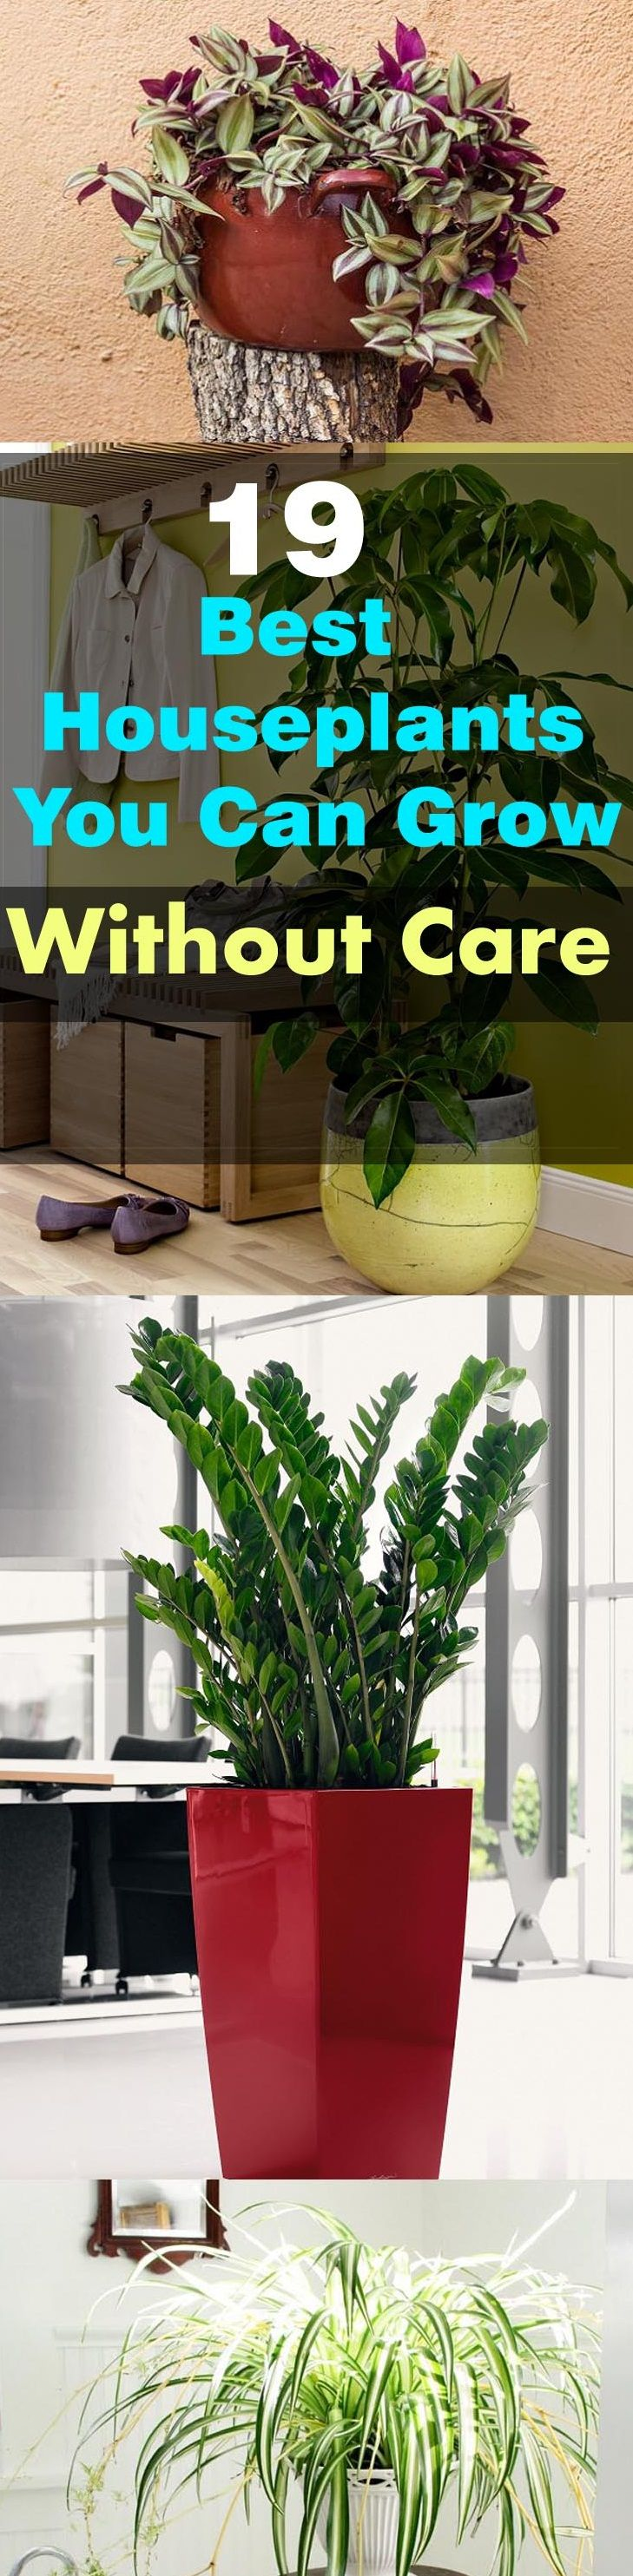 19 best houseplants you can grow without care pflanzen pinterest - Beste zimmerpflanzen ...